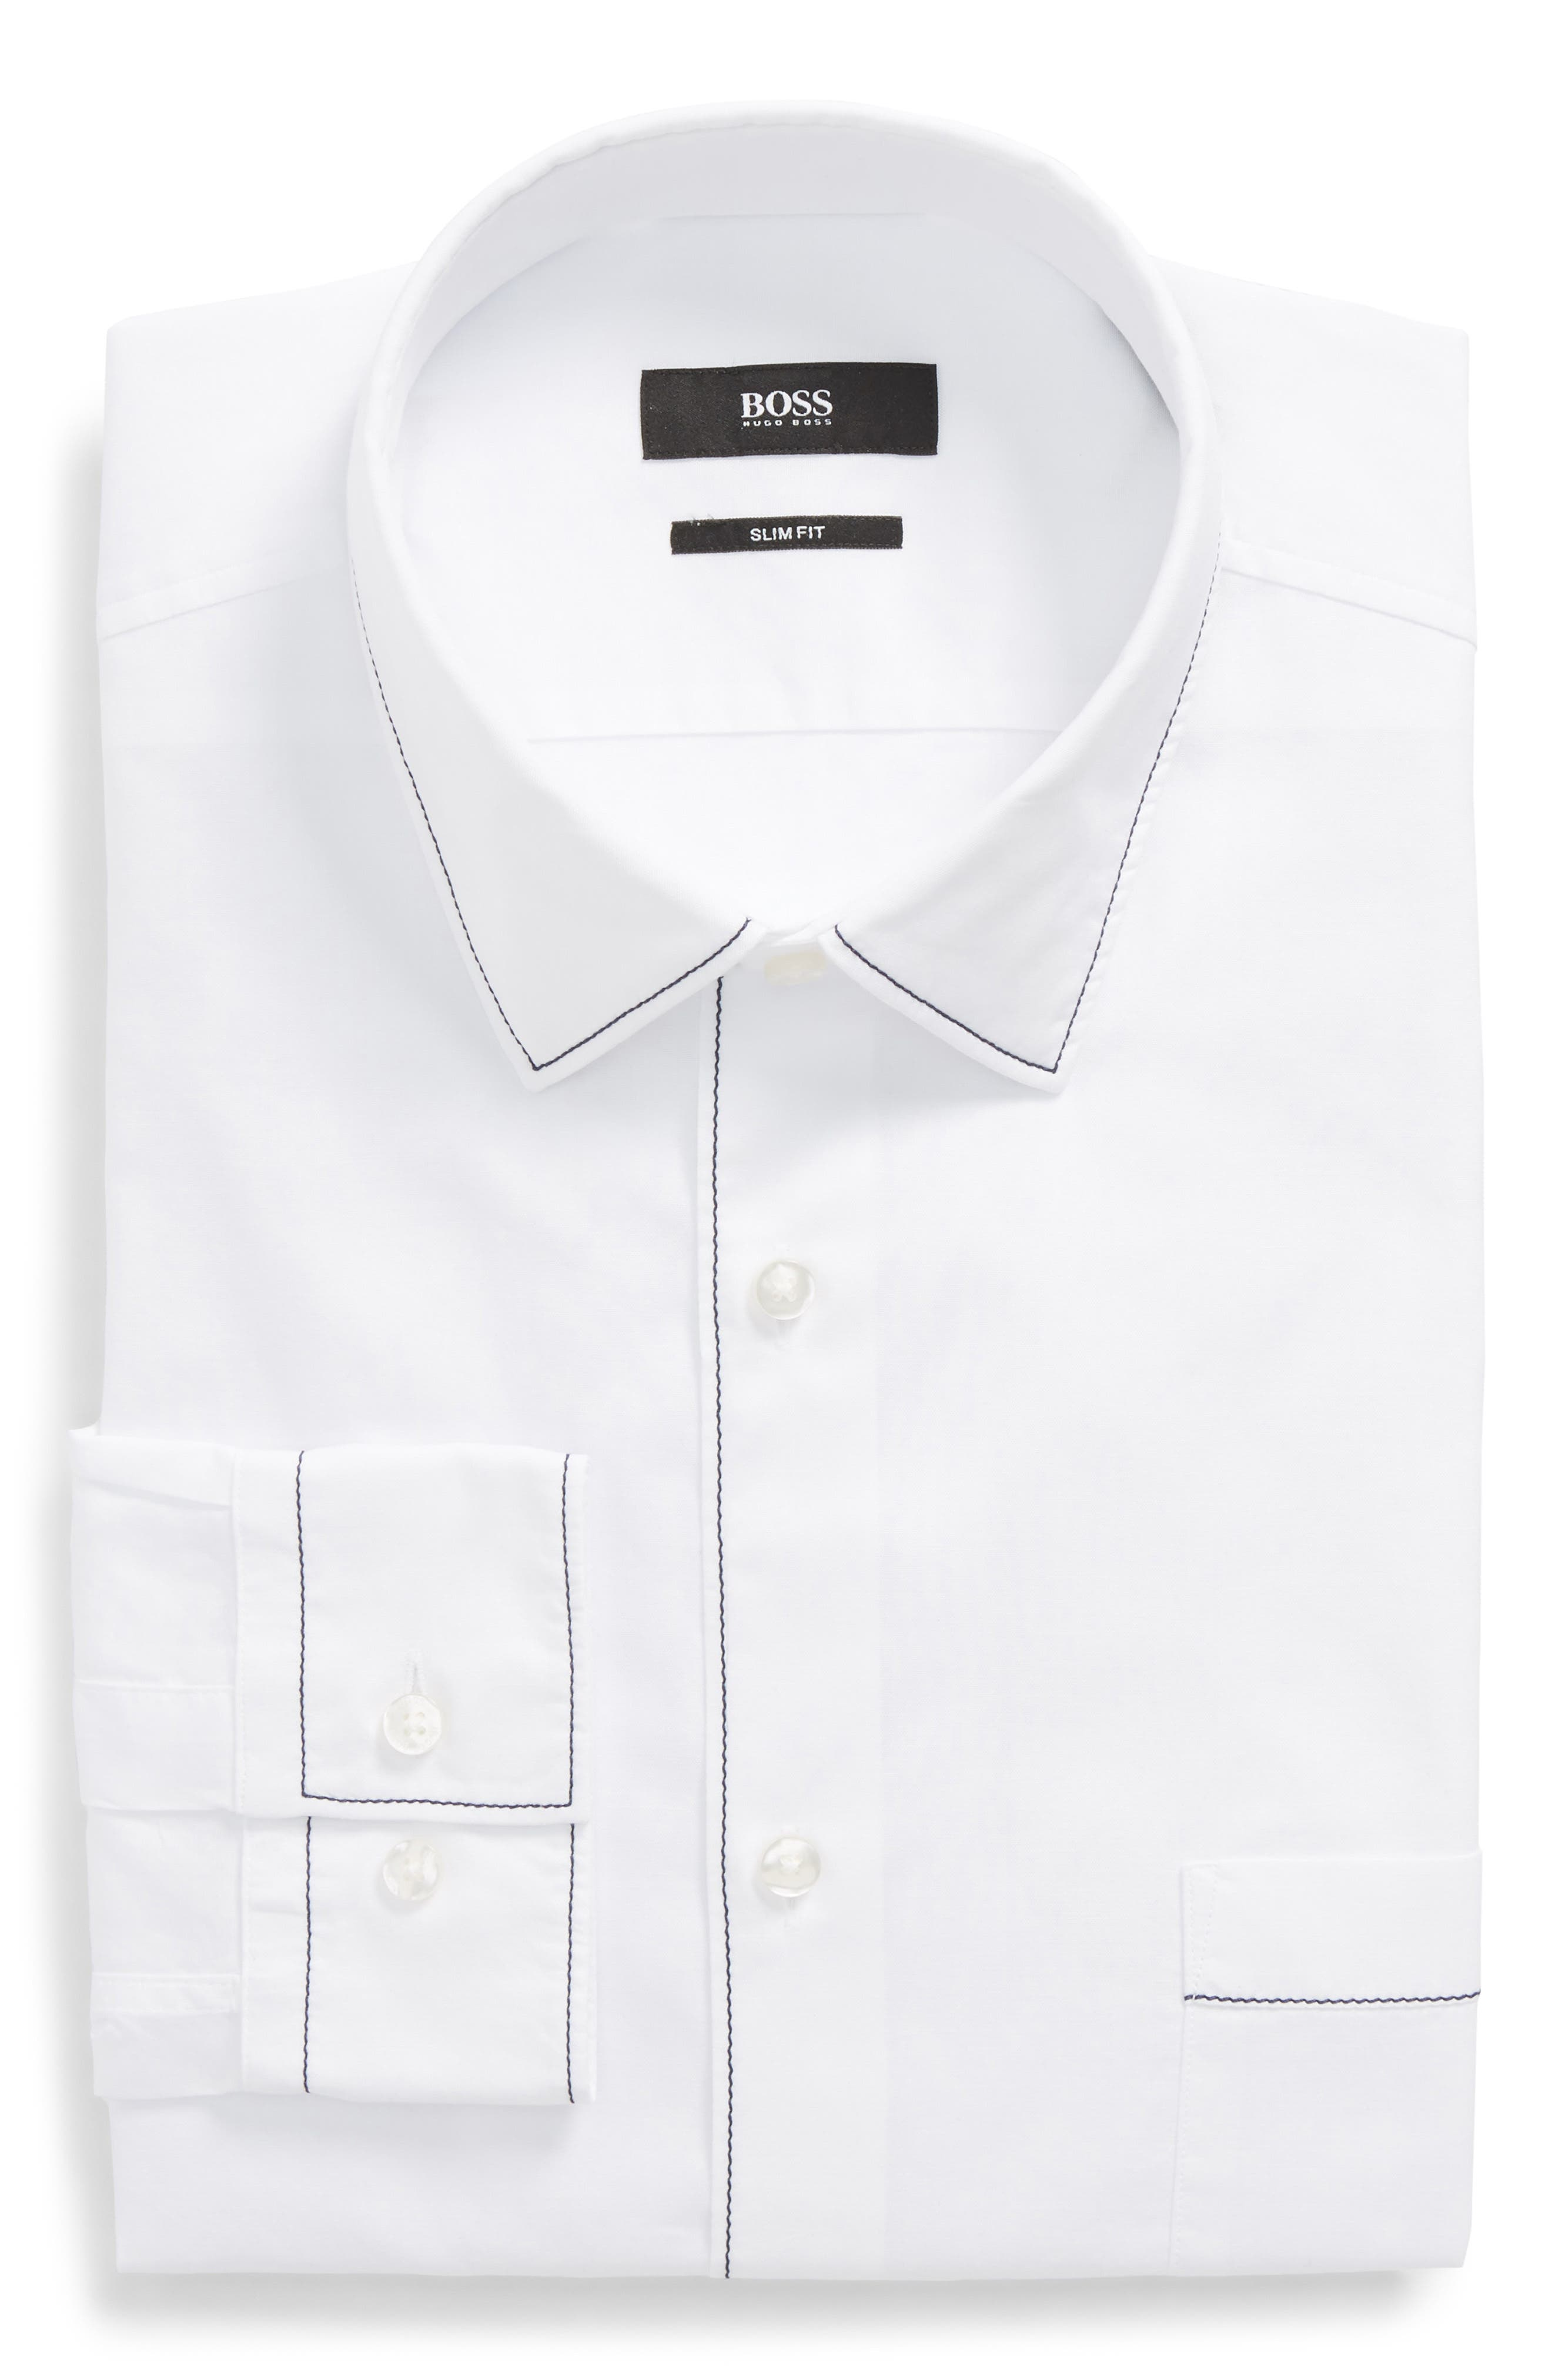 Jose Slim Fit Solid Dress Shirt,                             Main thumbnail 1, color,                             100